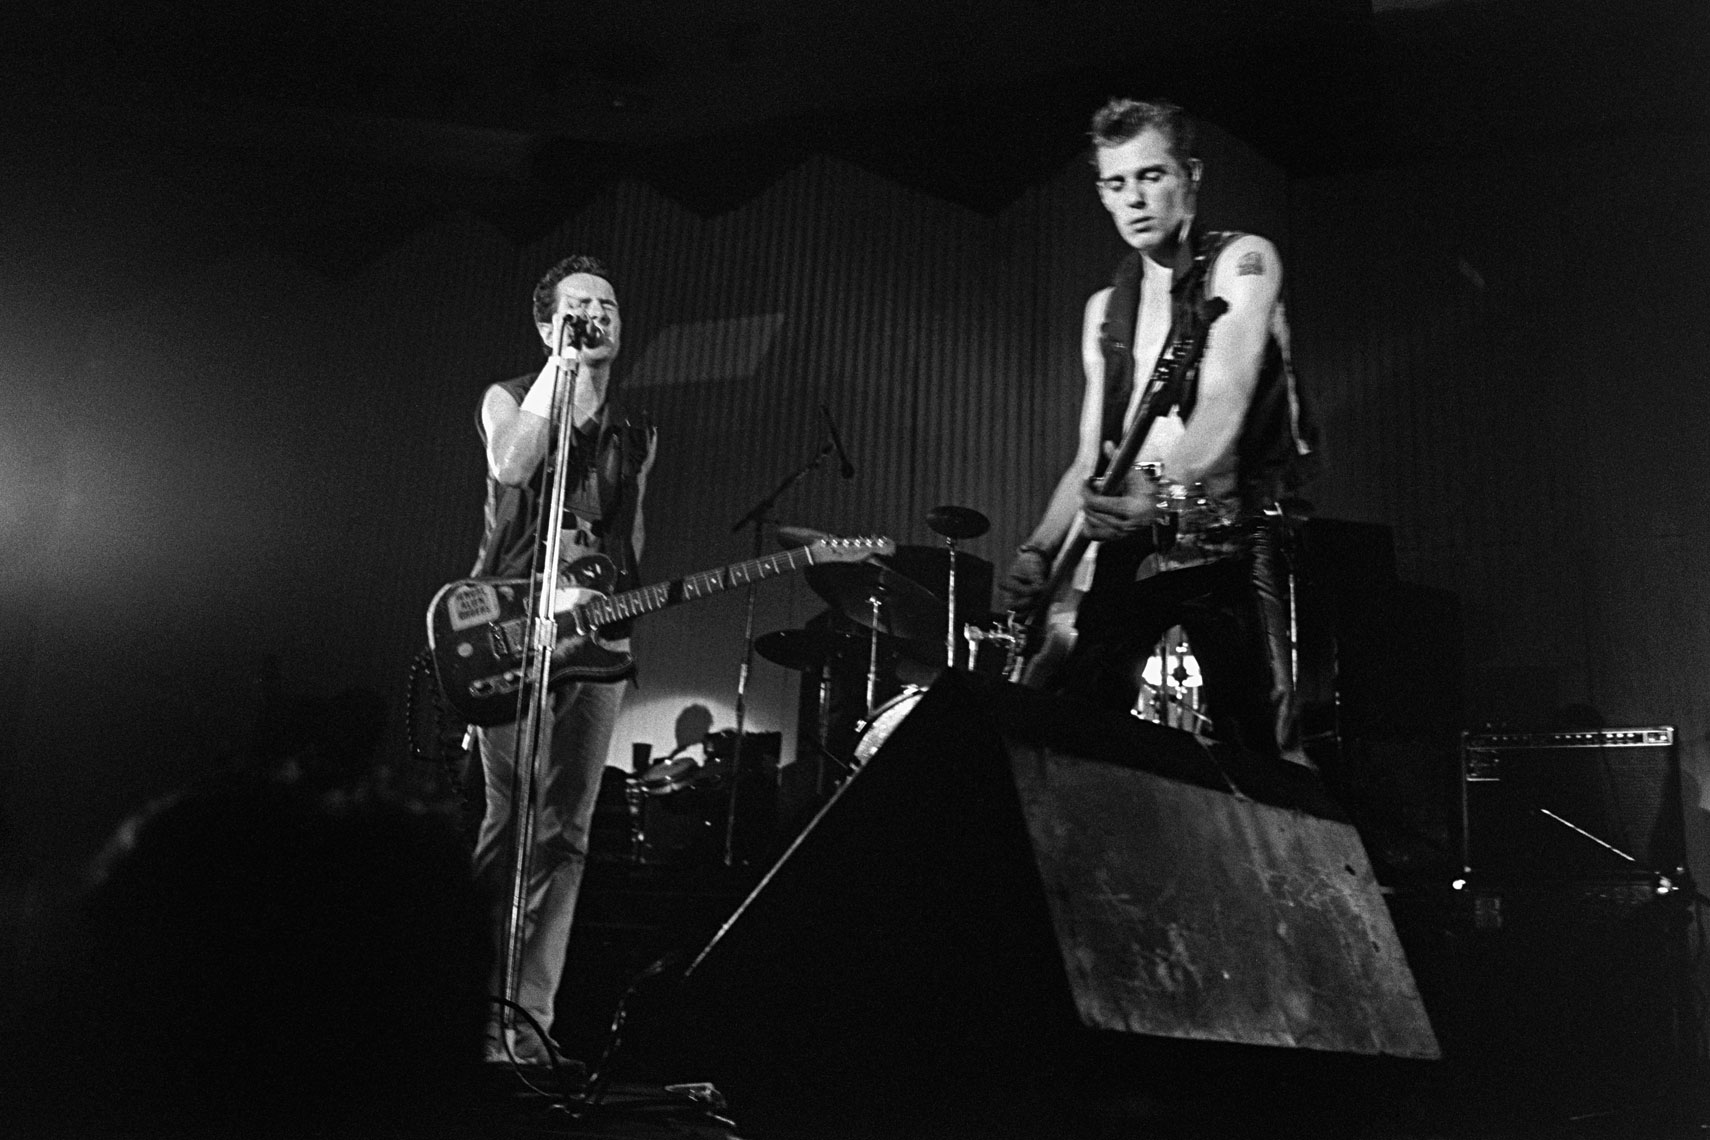 020_020_The_Clash_Bonds